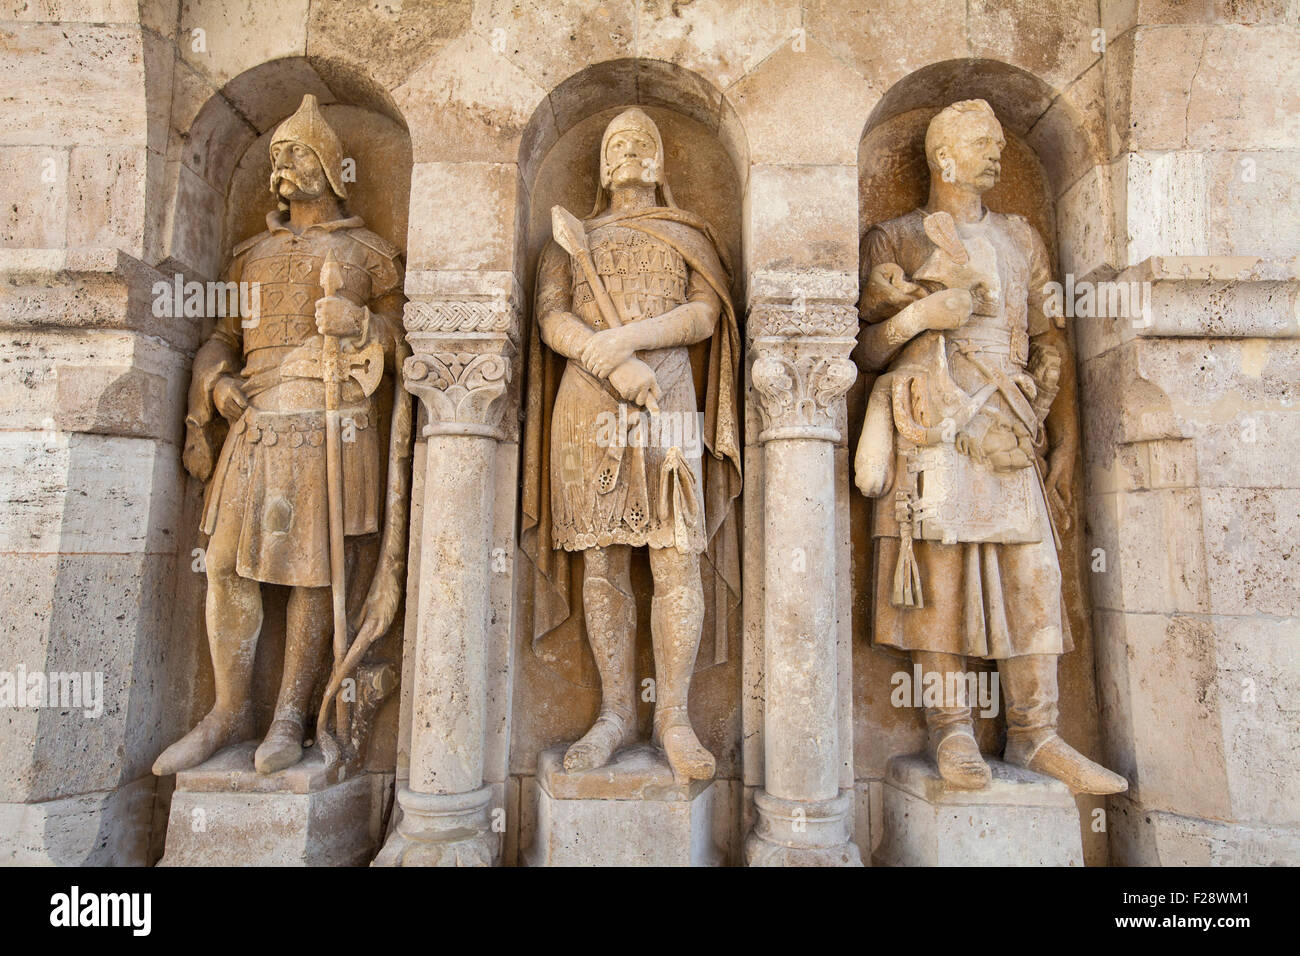 Beautiful sculptures at the Fisherman's Bastion in Budapest, Hungary. Stock Photo